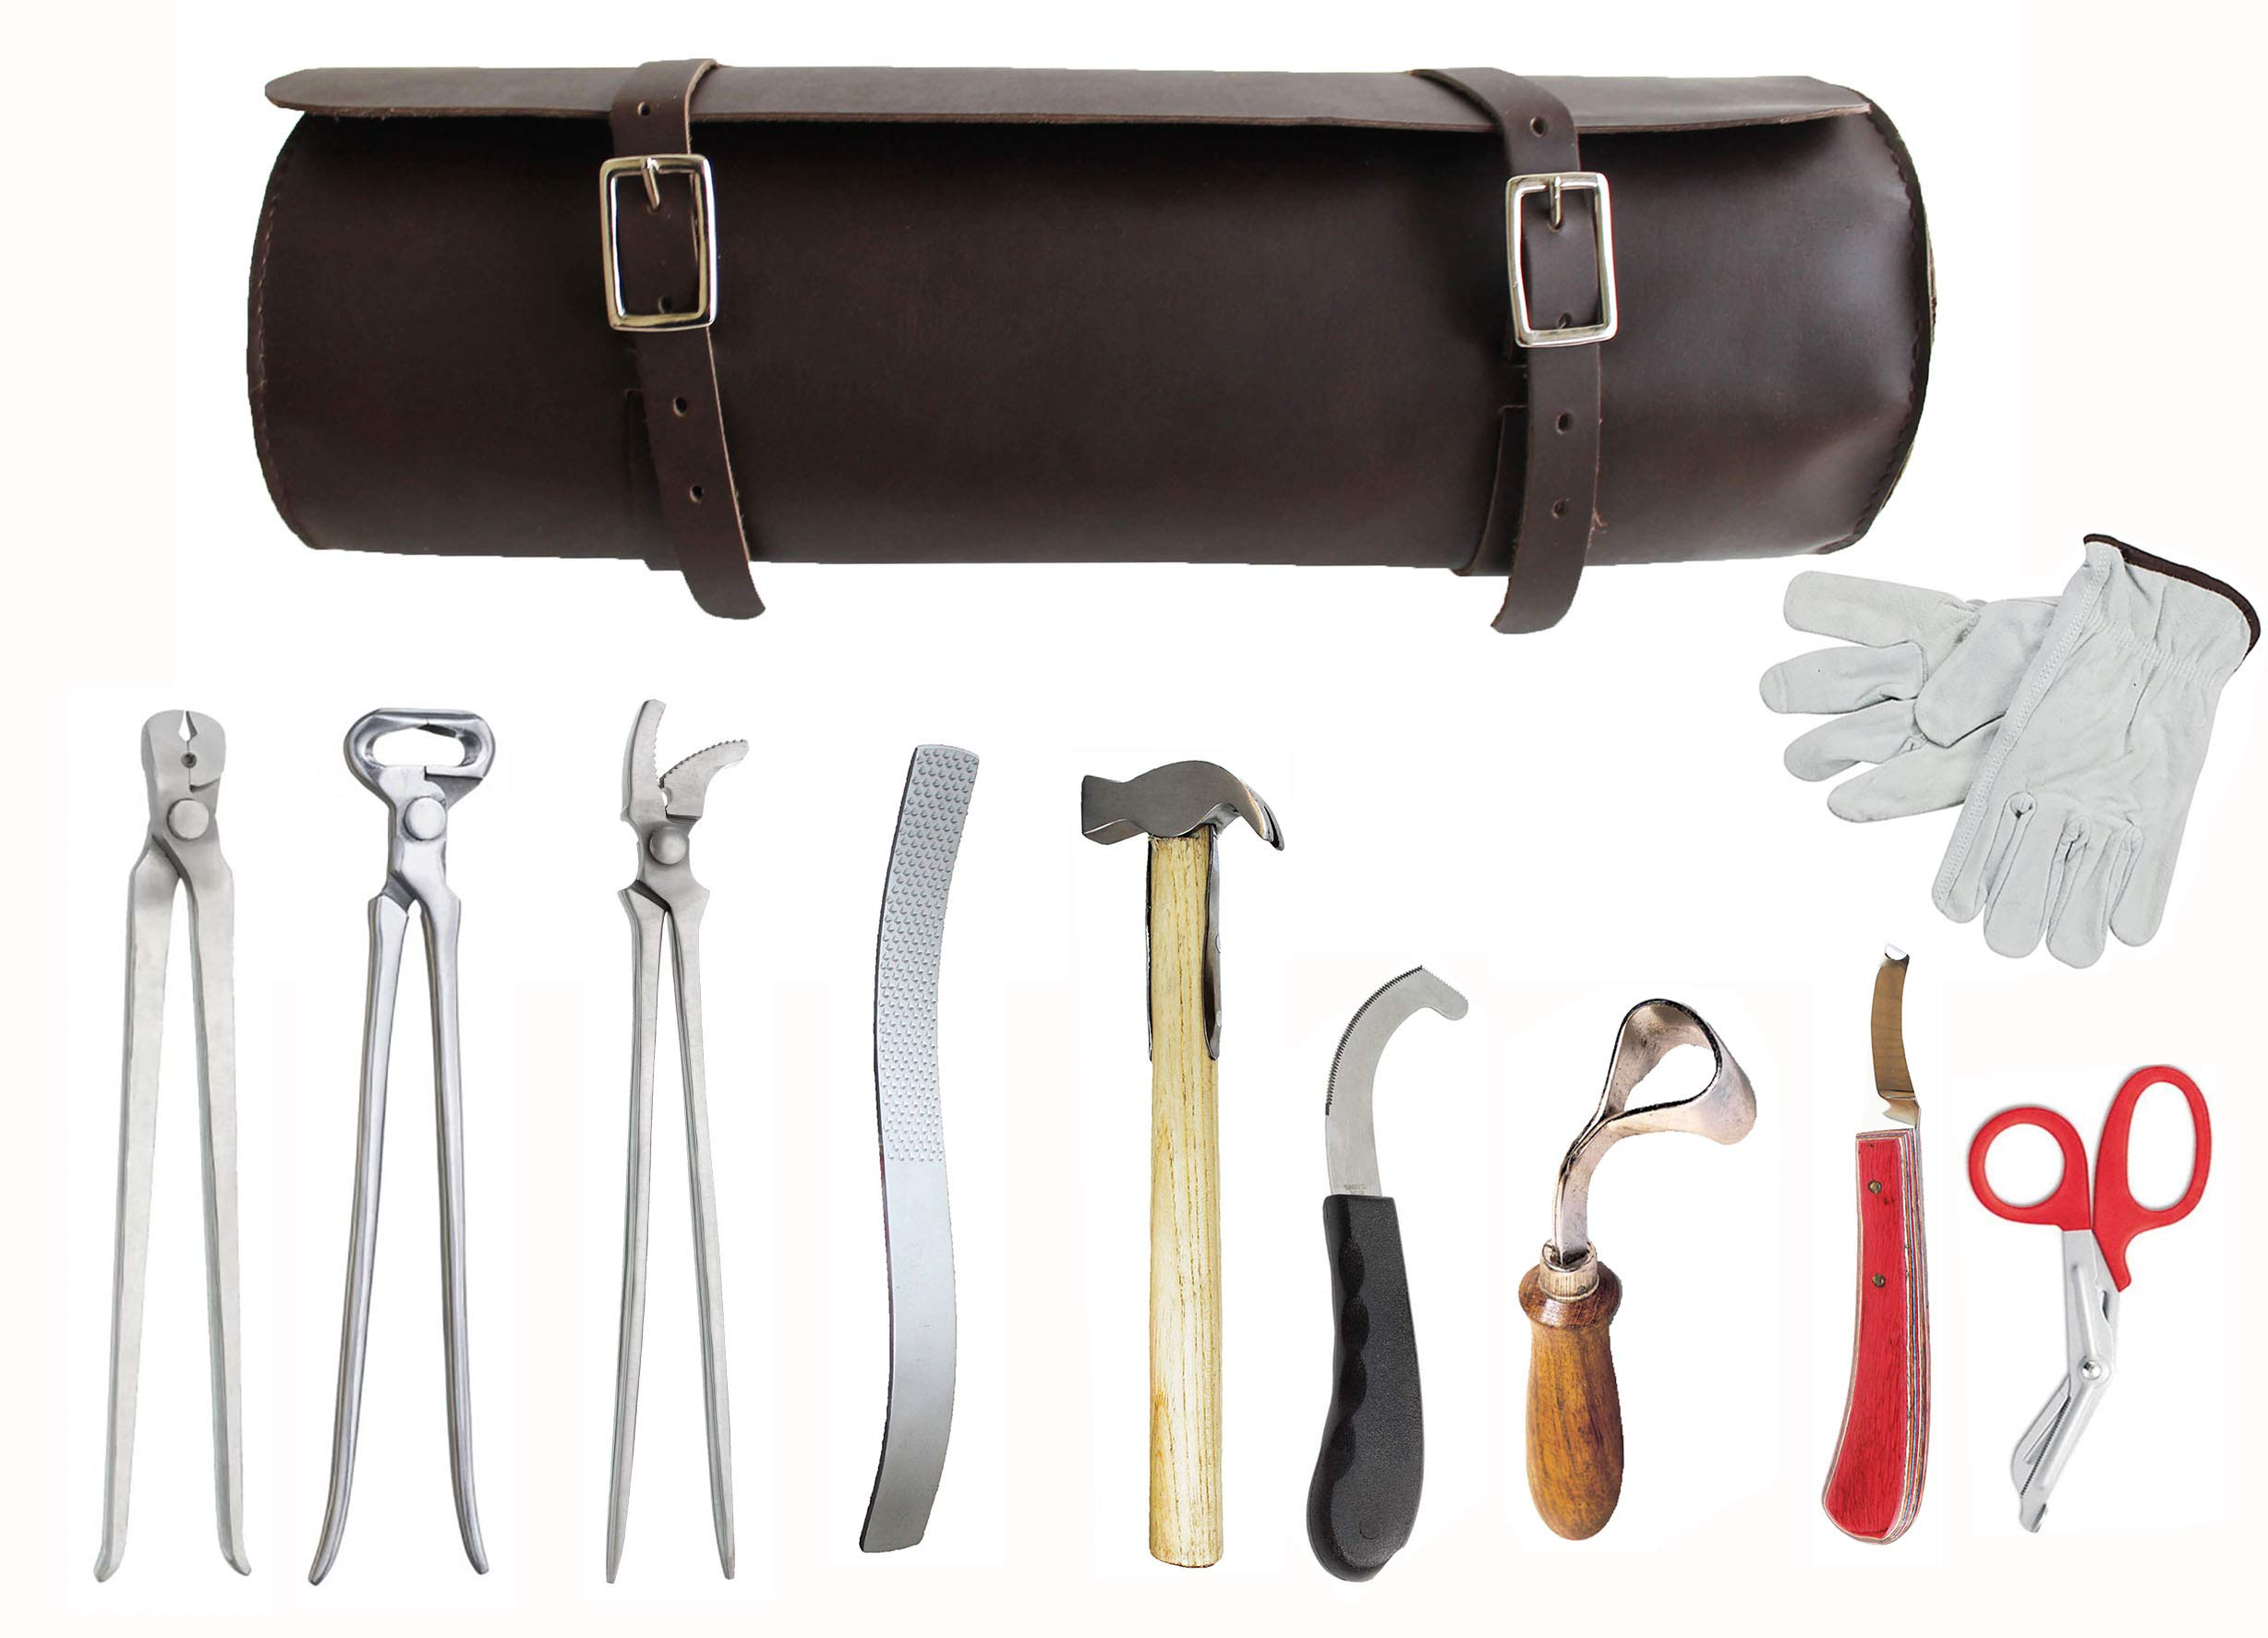 ProRider USA 10 Piece Horse Shoe Farrier Hoof Grooming Tool Nipper Kit w/Leather Bag 98499C